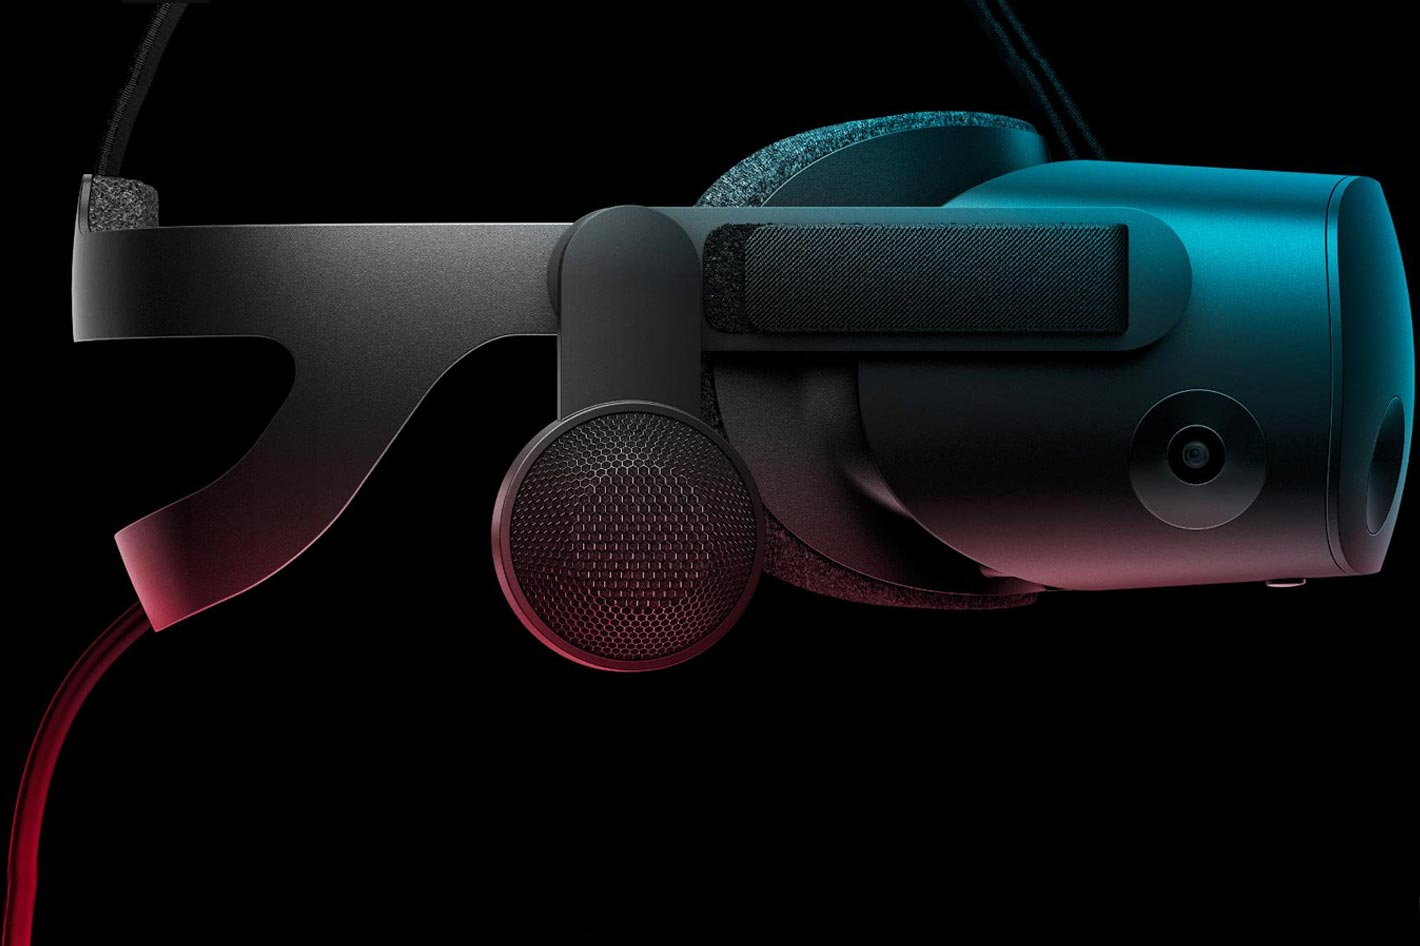 Reverb G2: a new high-resolution VR headset from HP, Microsoft and Valve